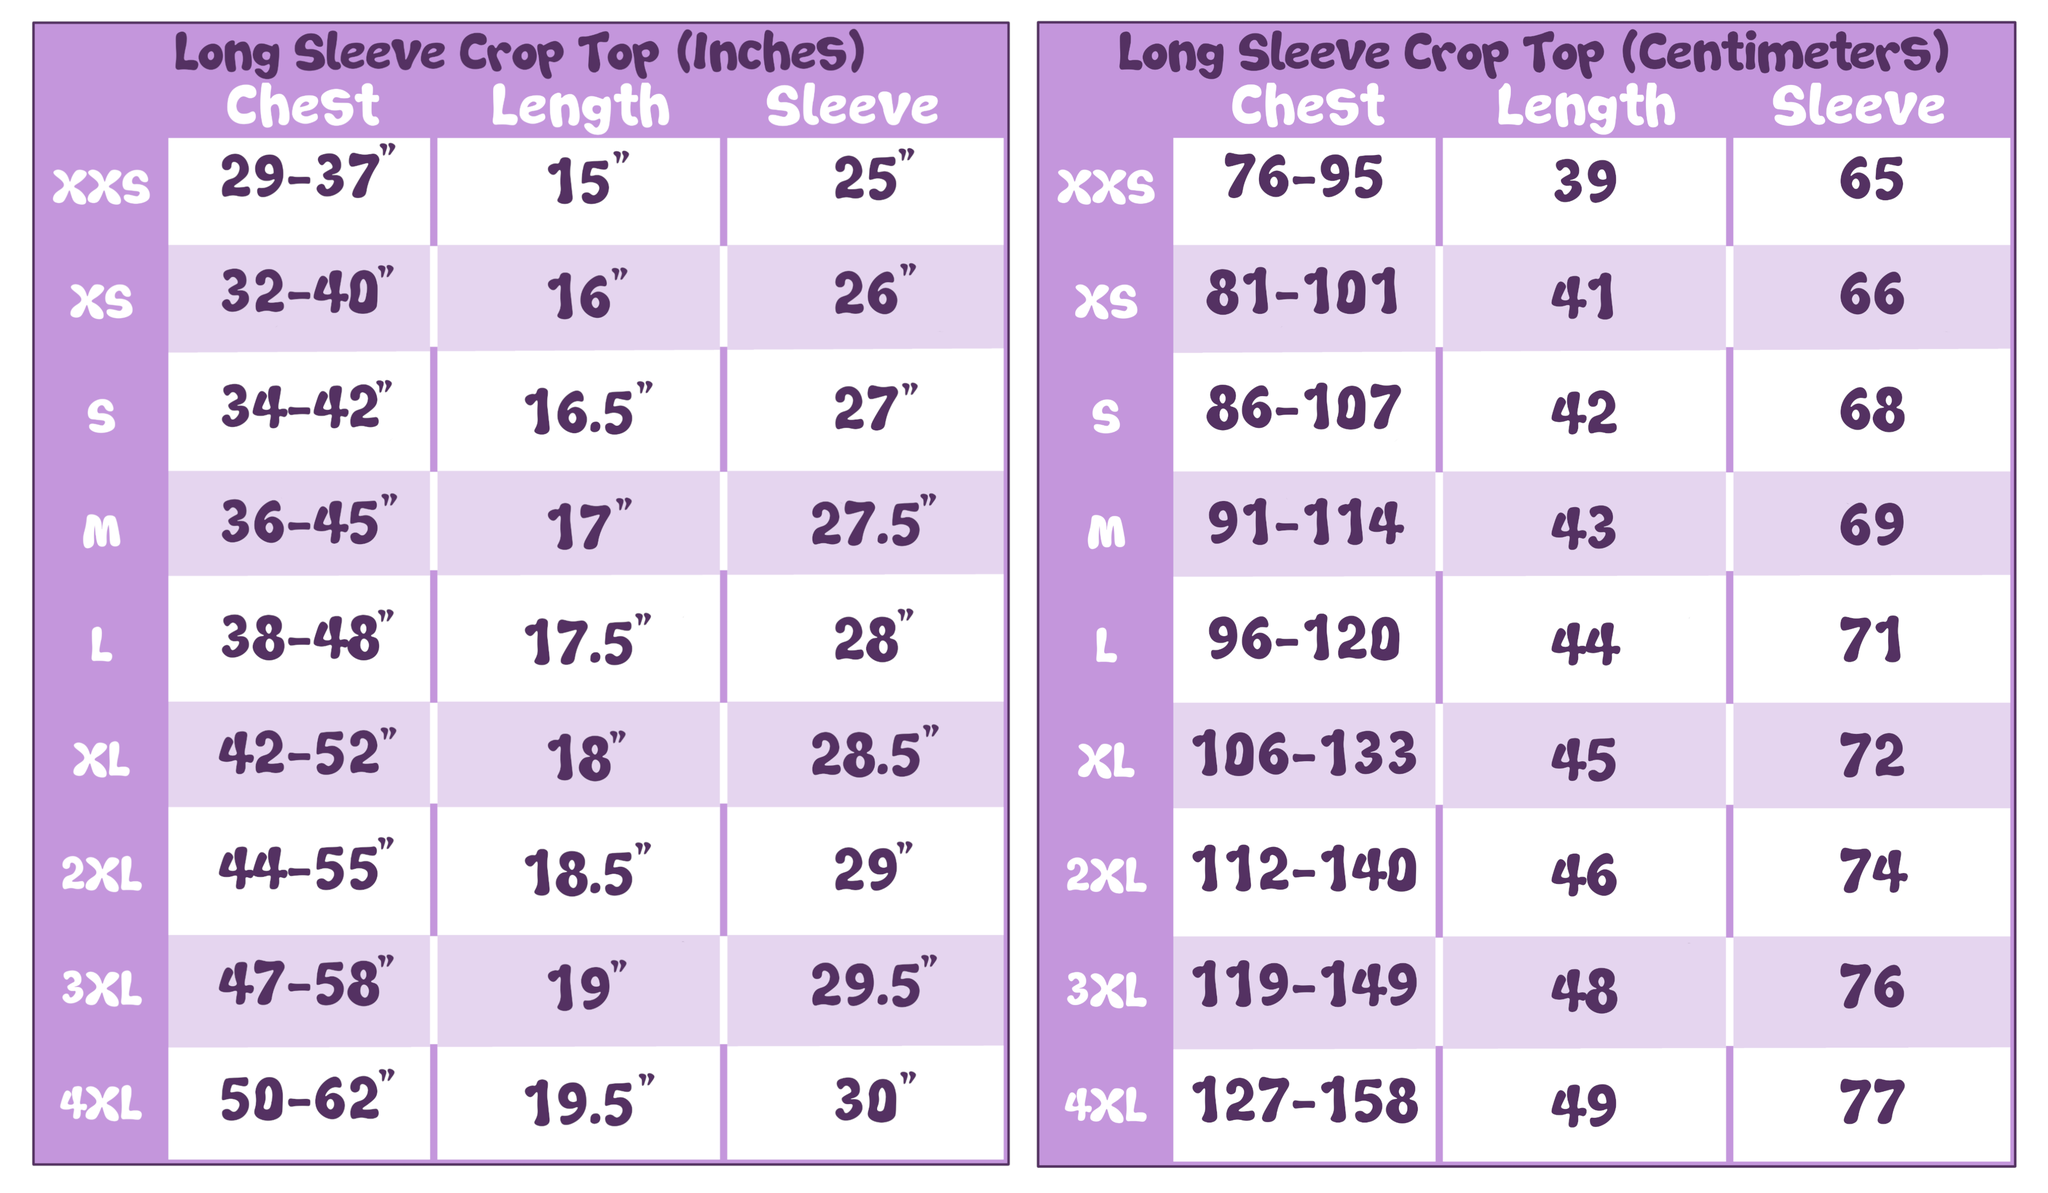 Long Sleeve Crop Top w/Thumb Holes Size Chart